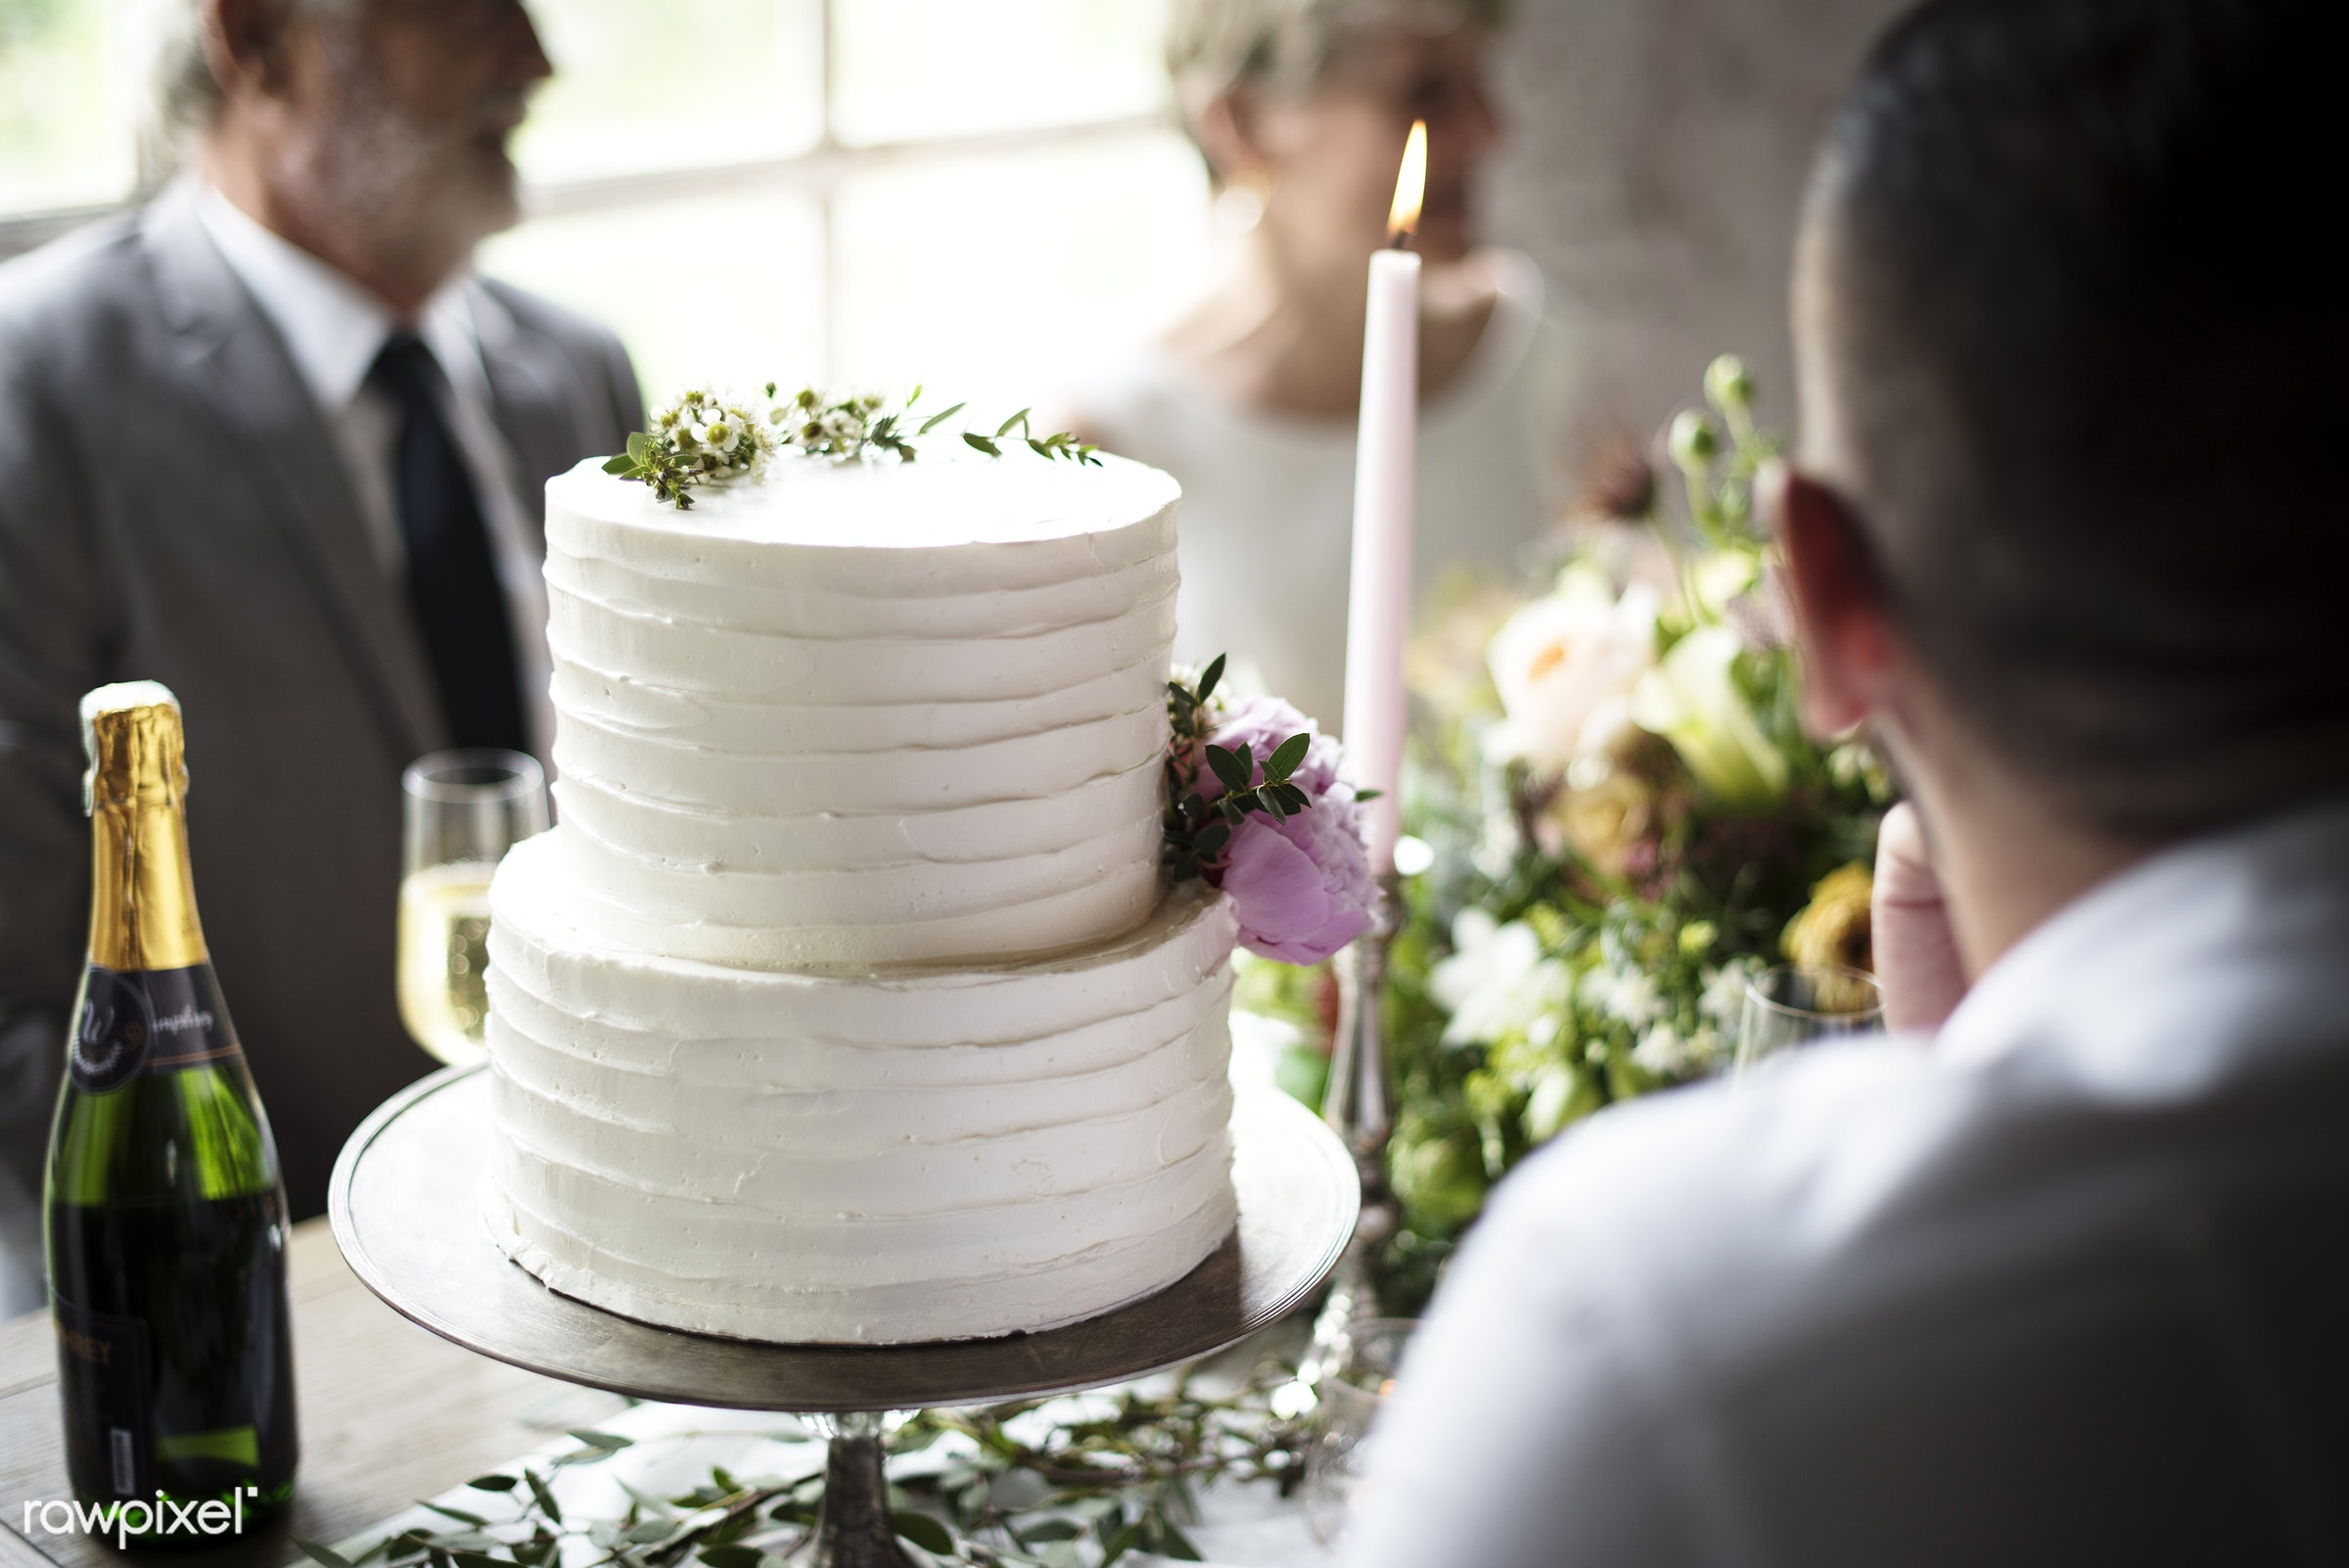 occasion, guests, people, together, event, gather, friendship, banquet, flowers, closeup, cake, diversity, champagne,...